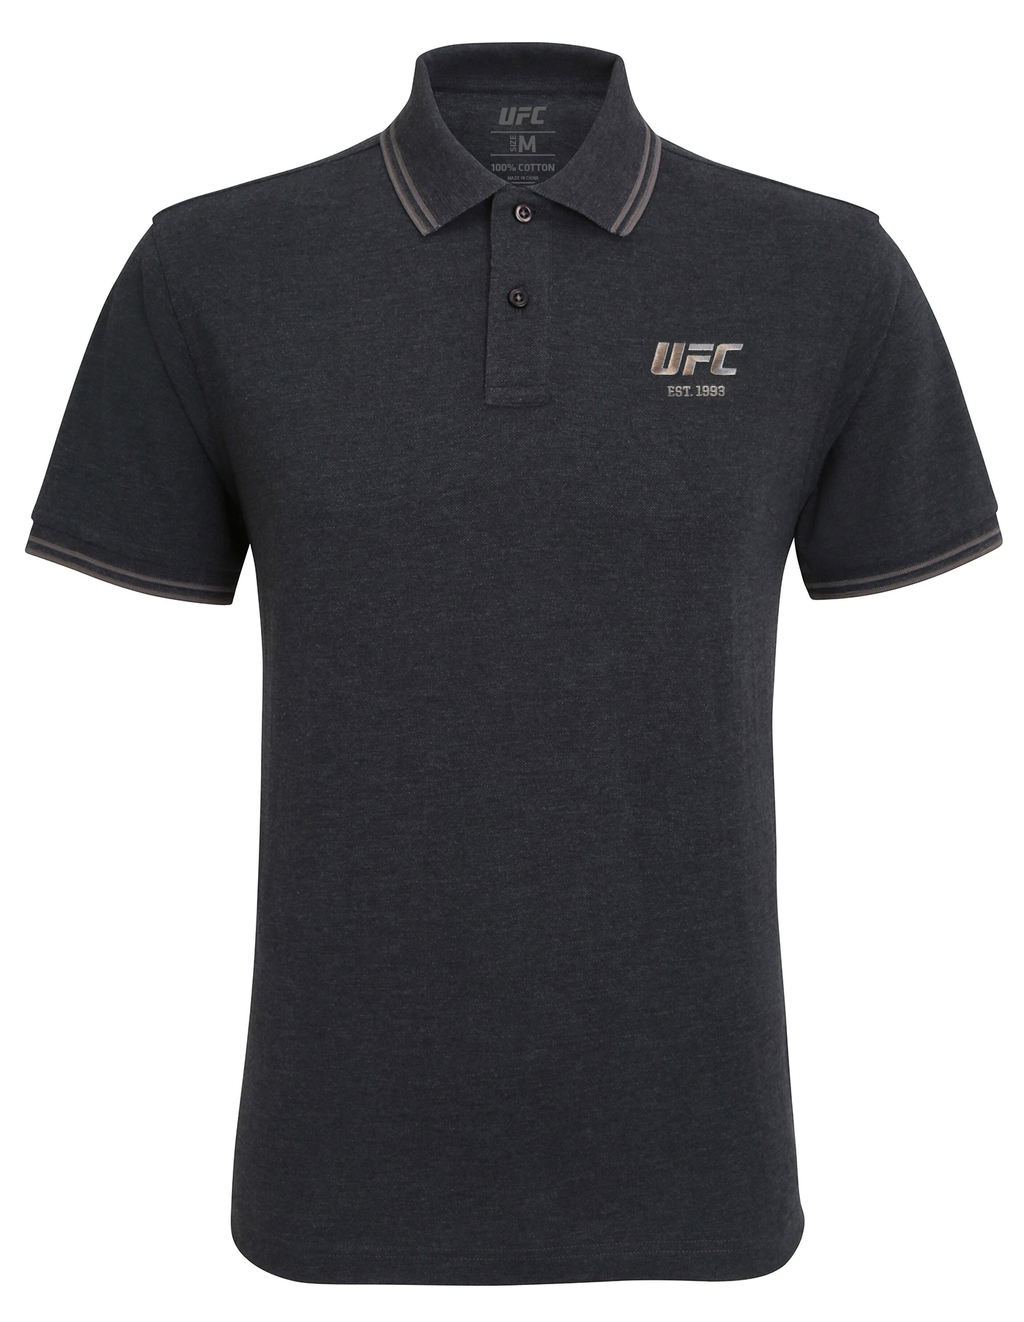 Men's UFC Classic Fit Tipped Polo Embroidered logo-Heather Black/Charcoal